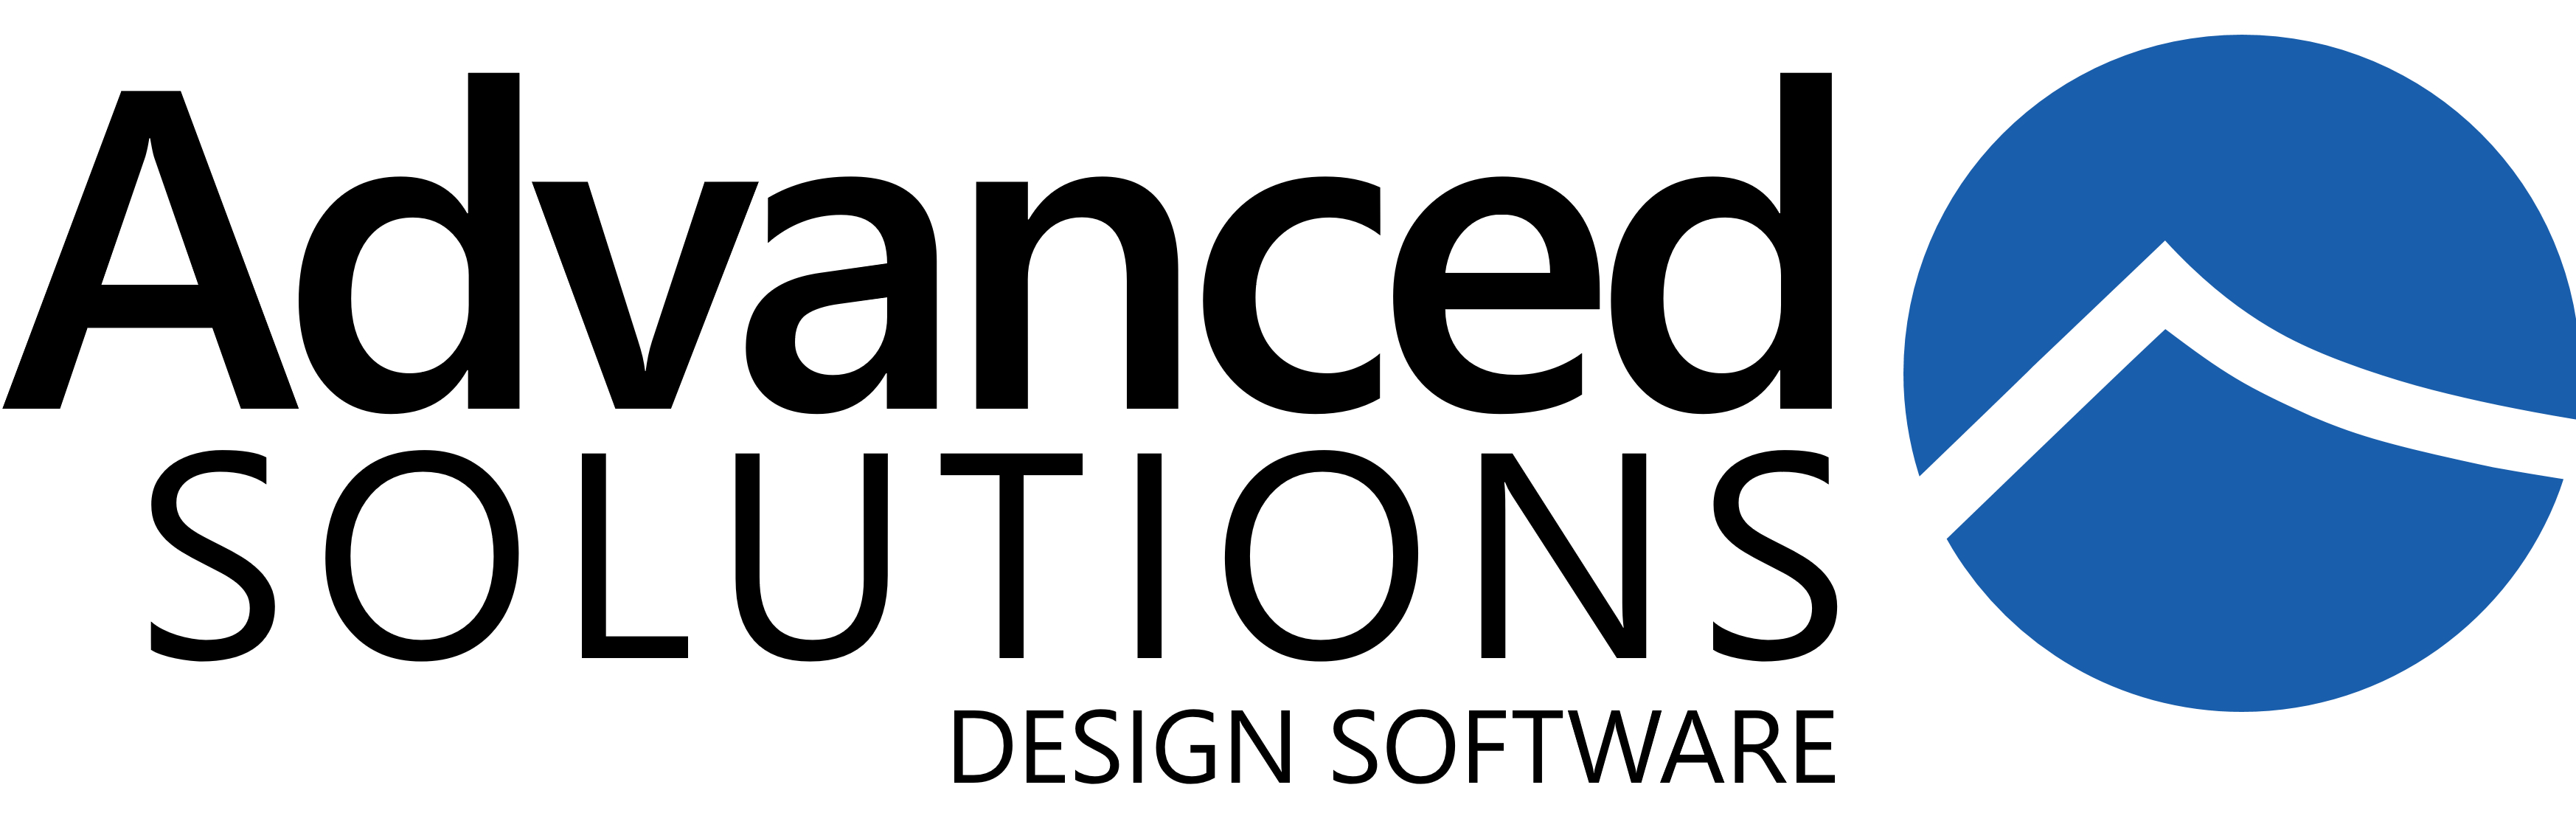 Advanced Solutions Design Software logo.